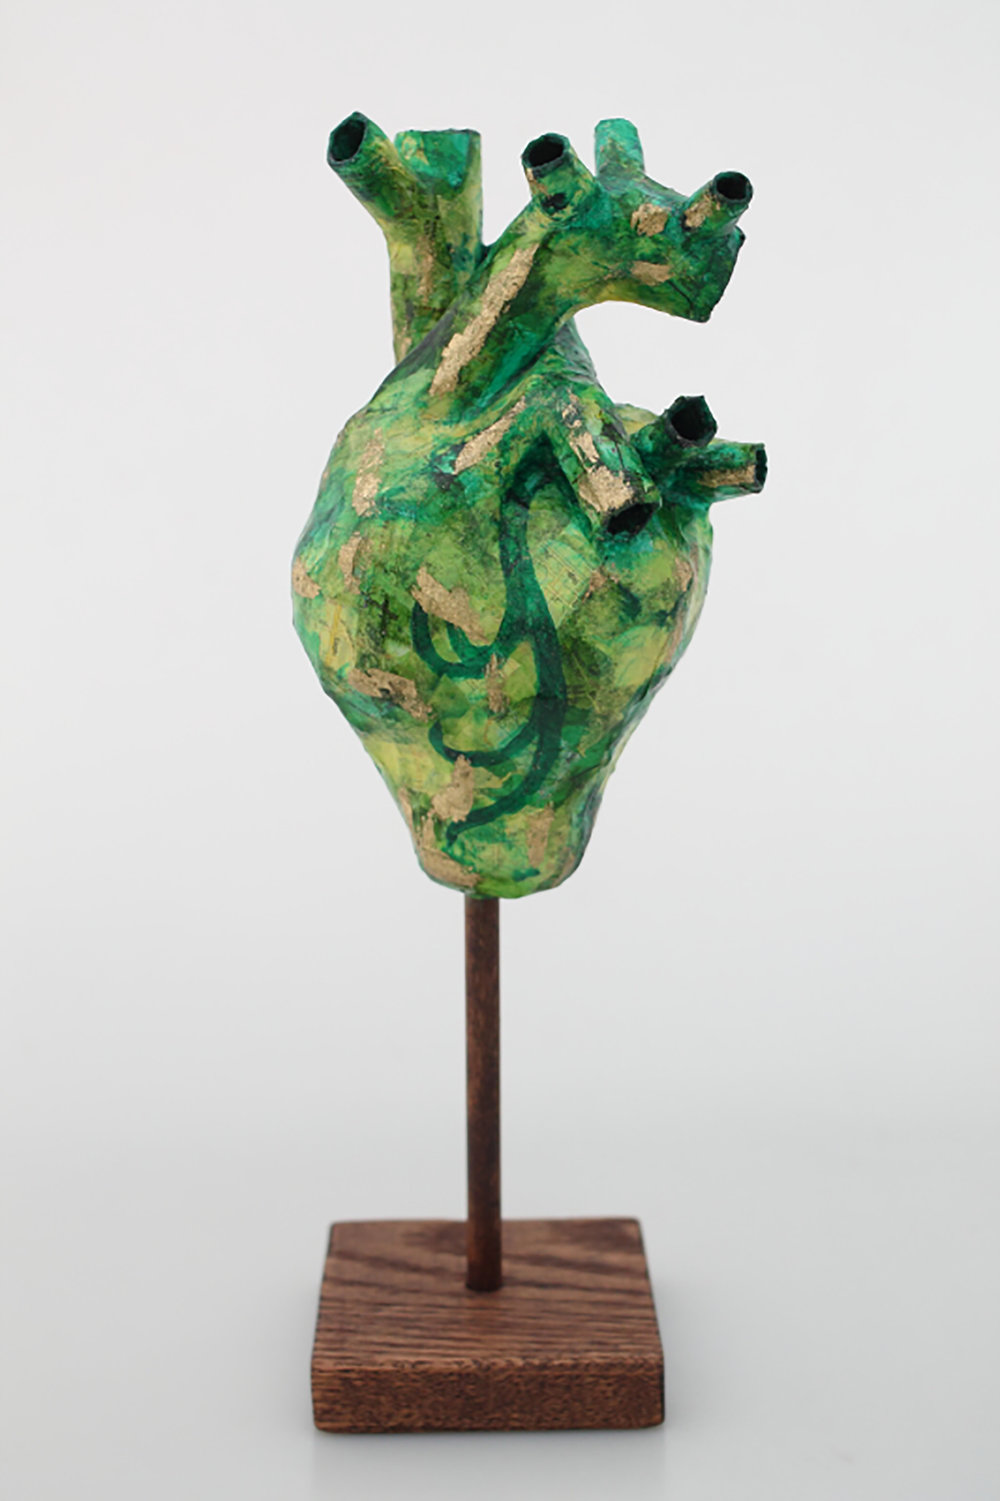 Proud Heart - Green  Papier maché and wood  10 x 4 x 3.5 inches  2015 - SOLD